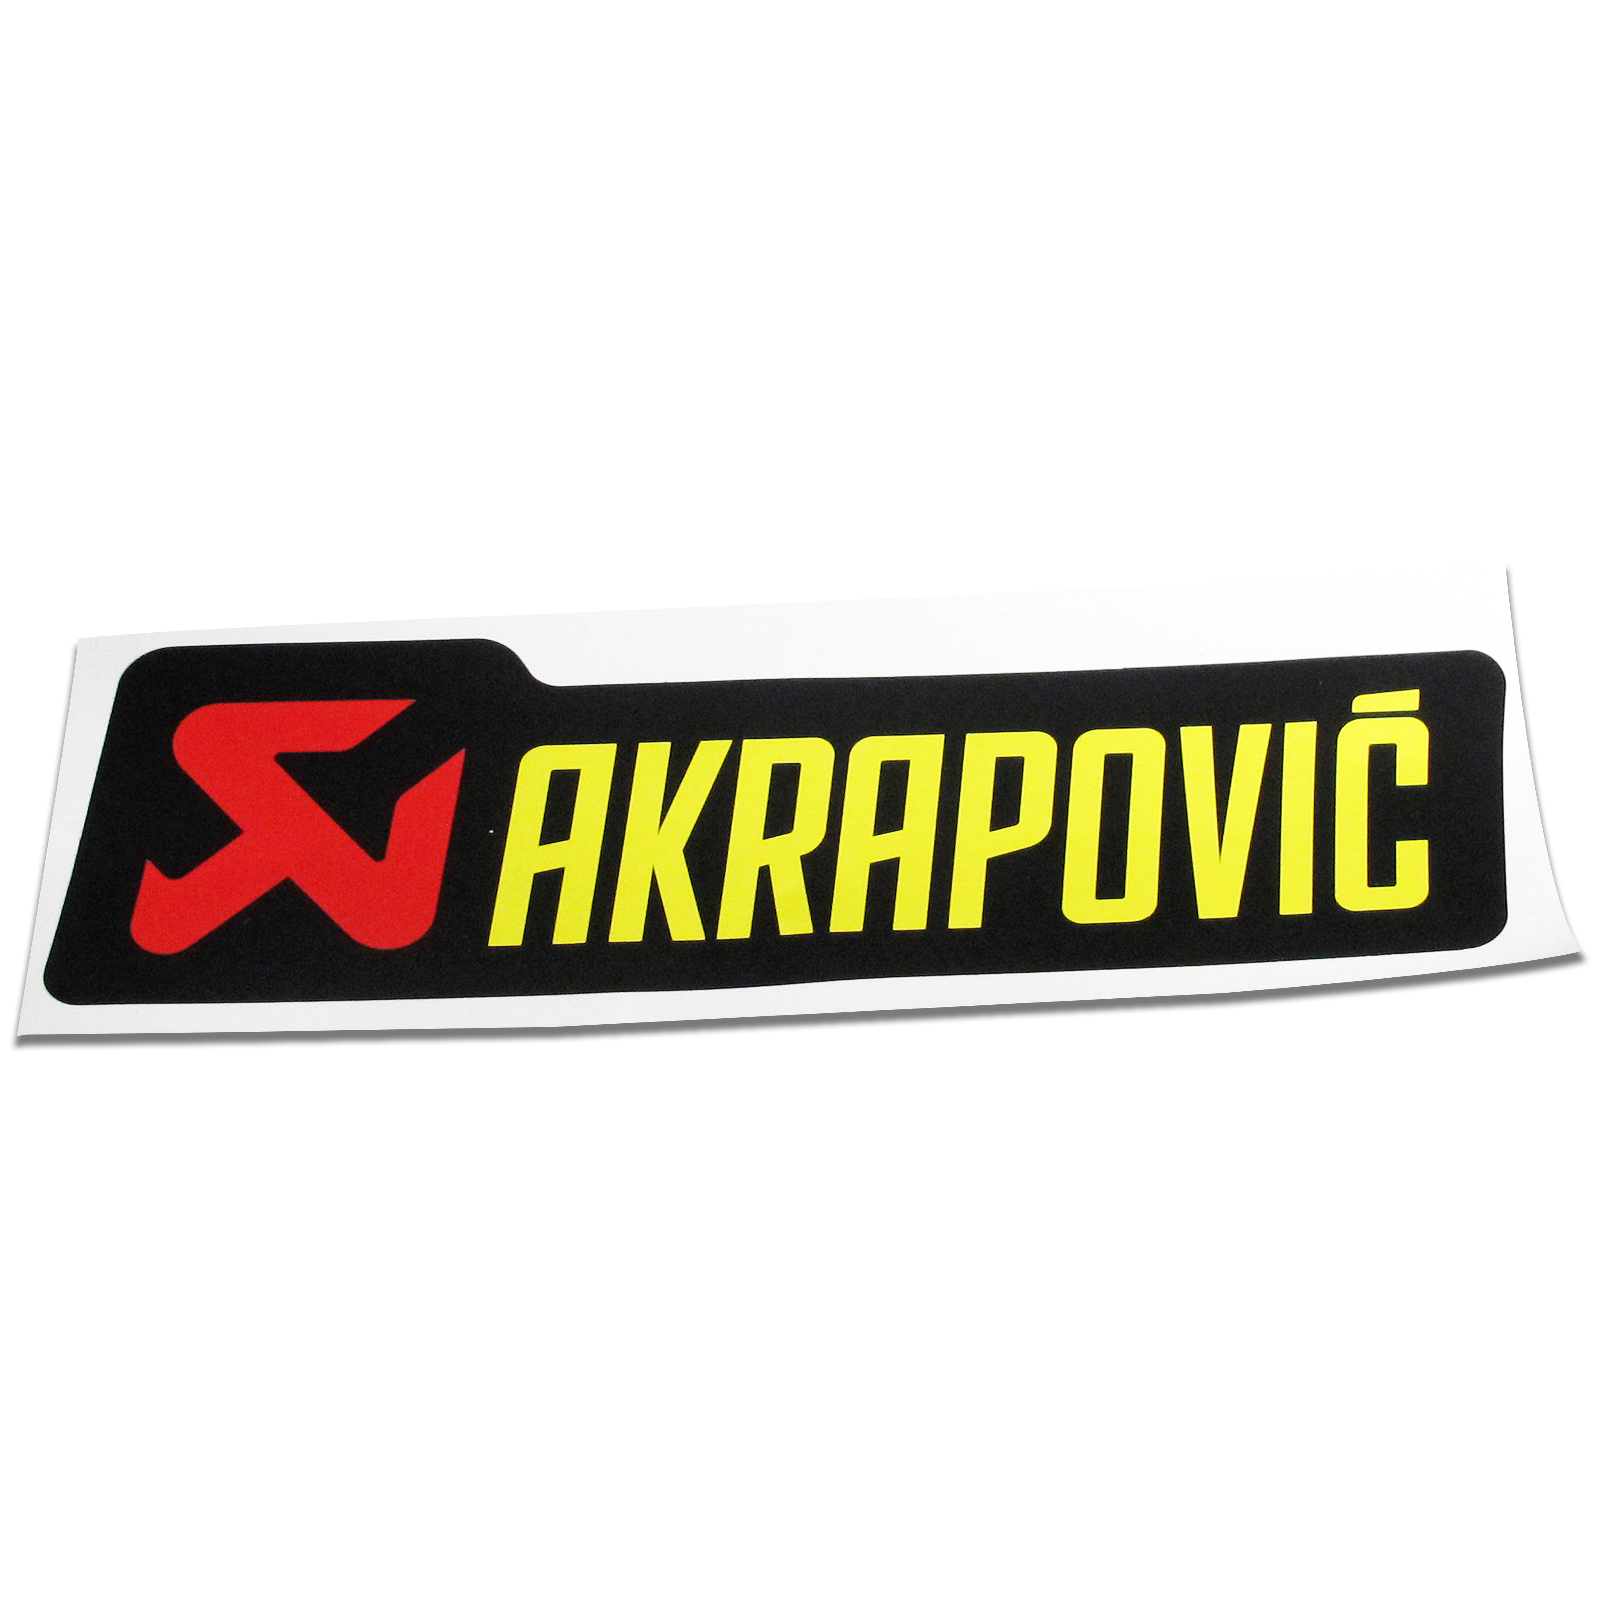 Details about motorcycle bike akrapovic exhaust silencer can decal badge sticker 150mm